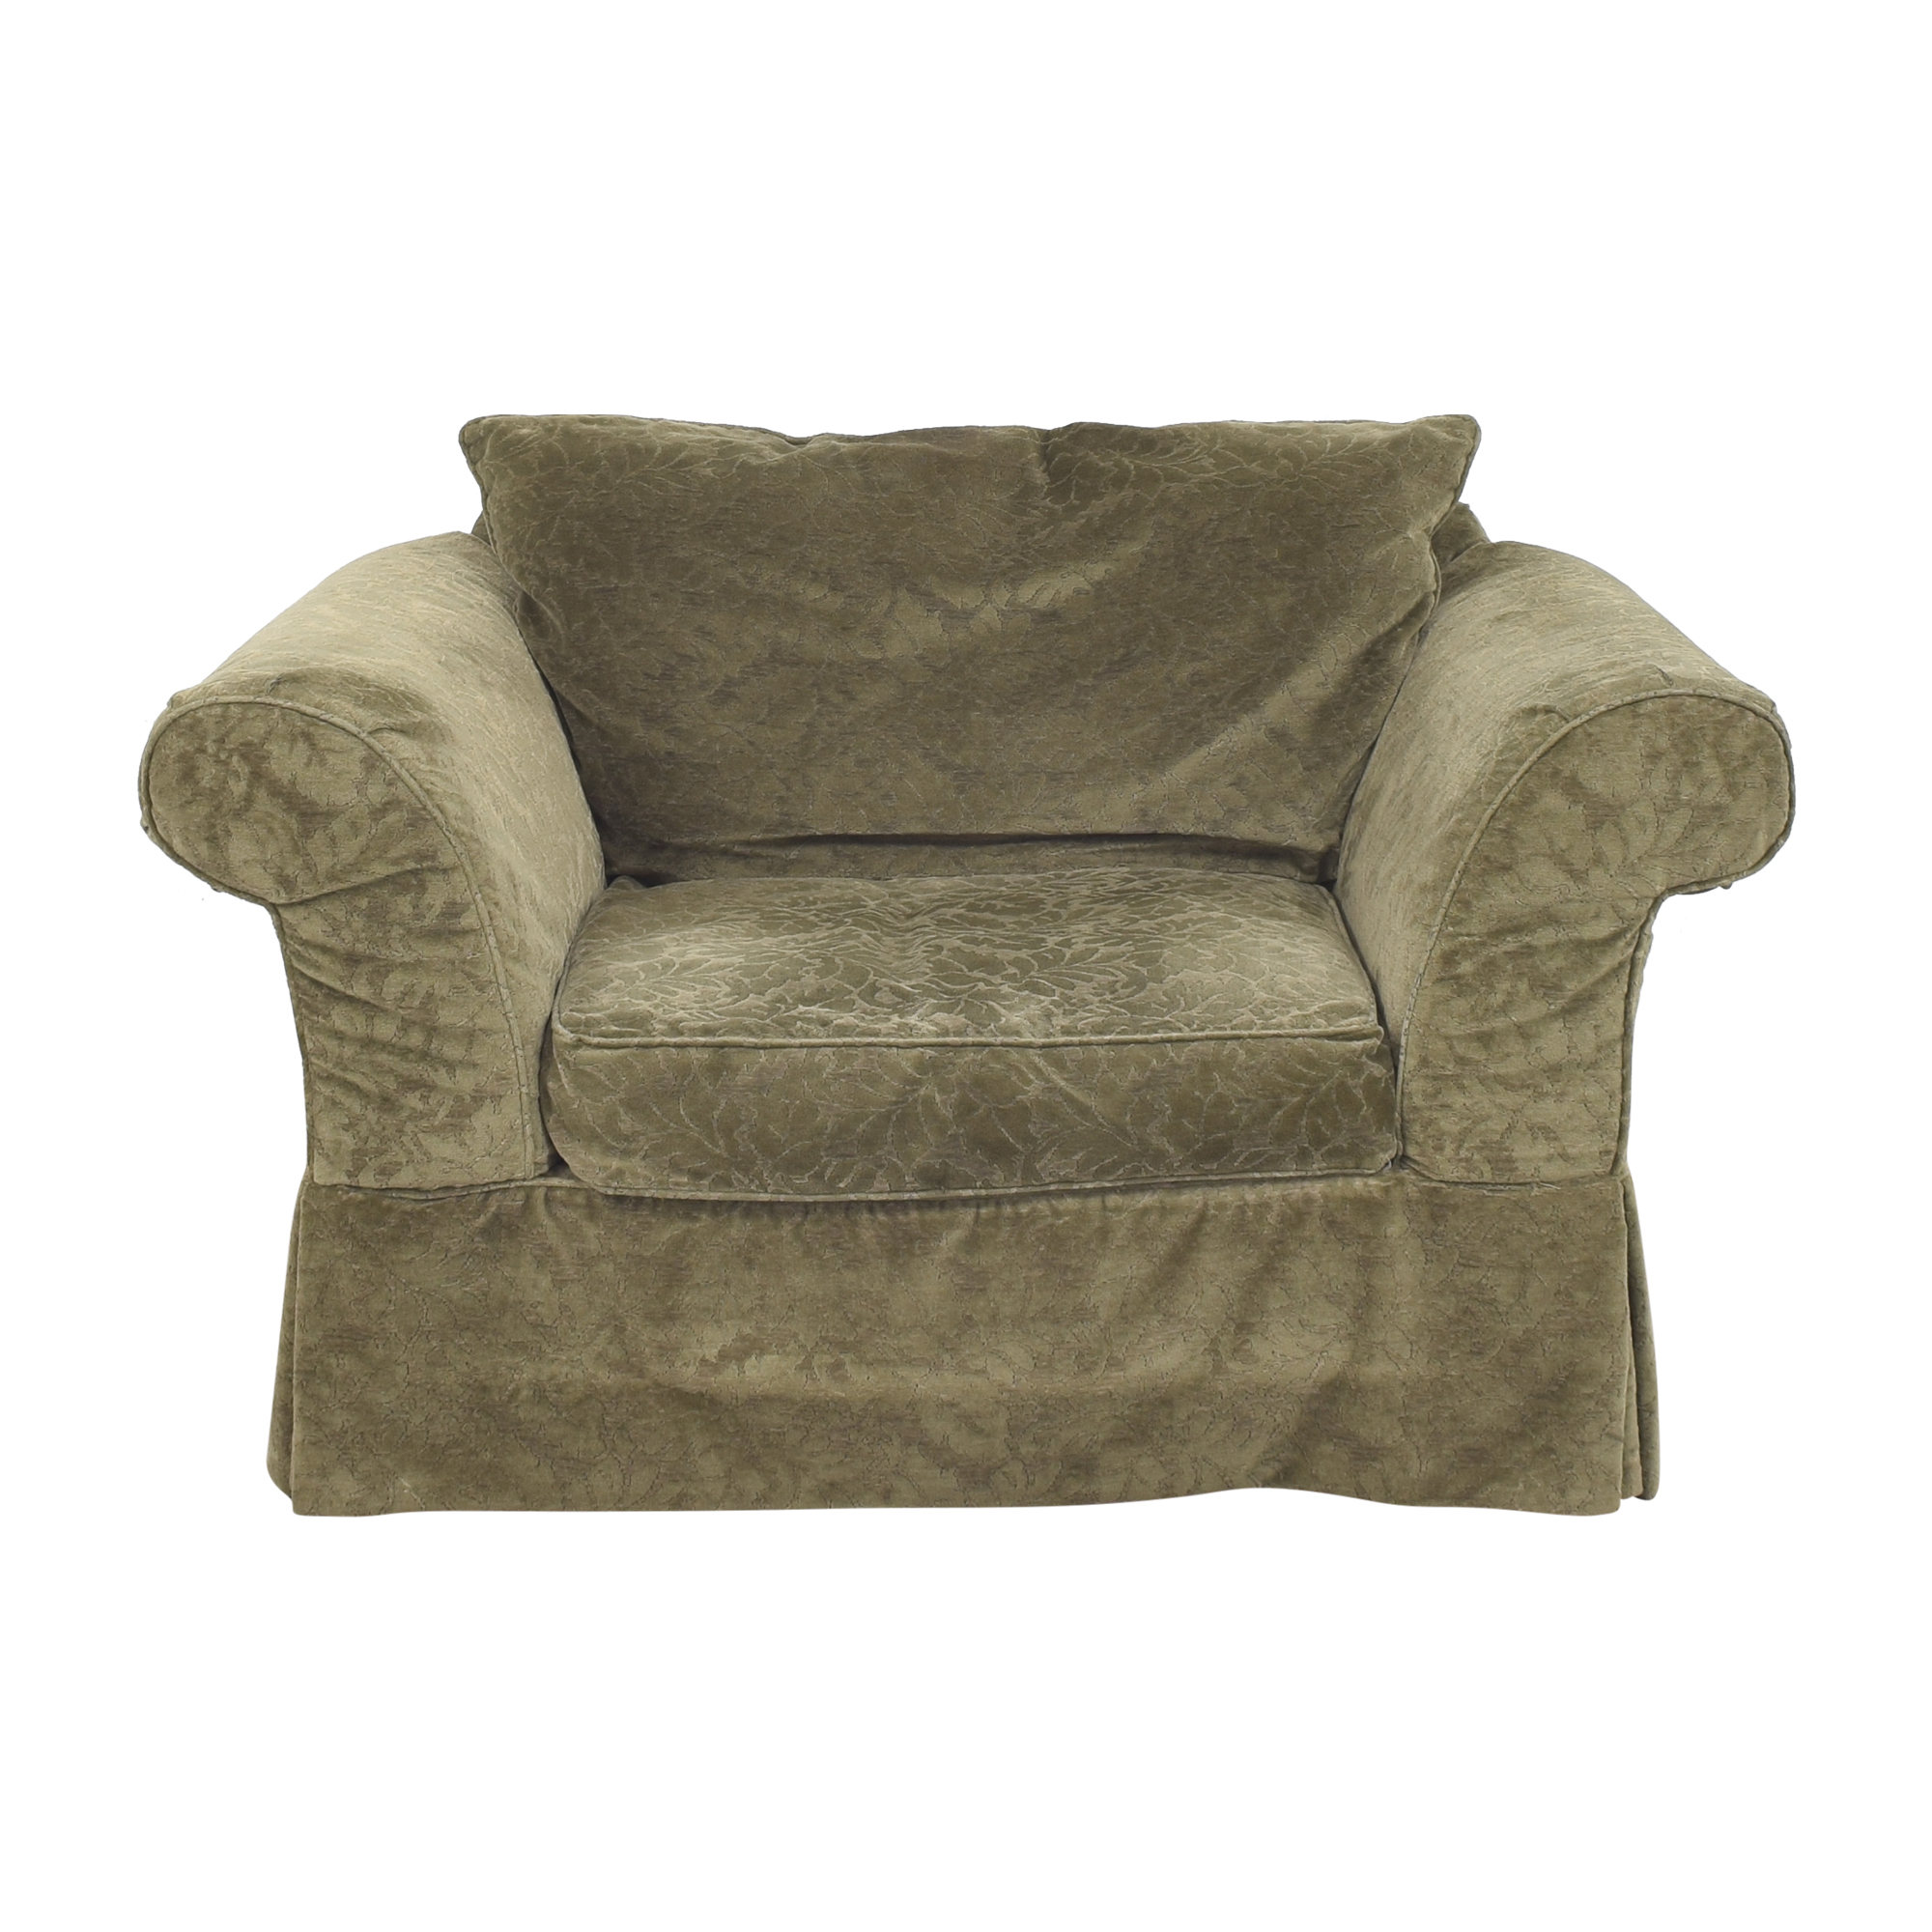 shop Southern Furniture of Conover Chair and a Half Southern Furniture of Conover Accent Chairs